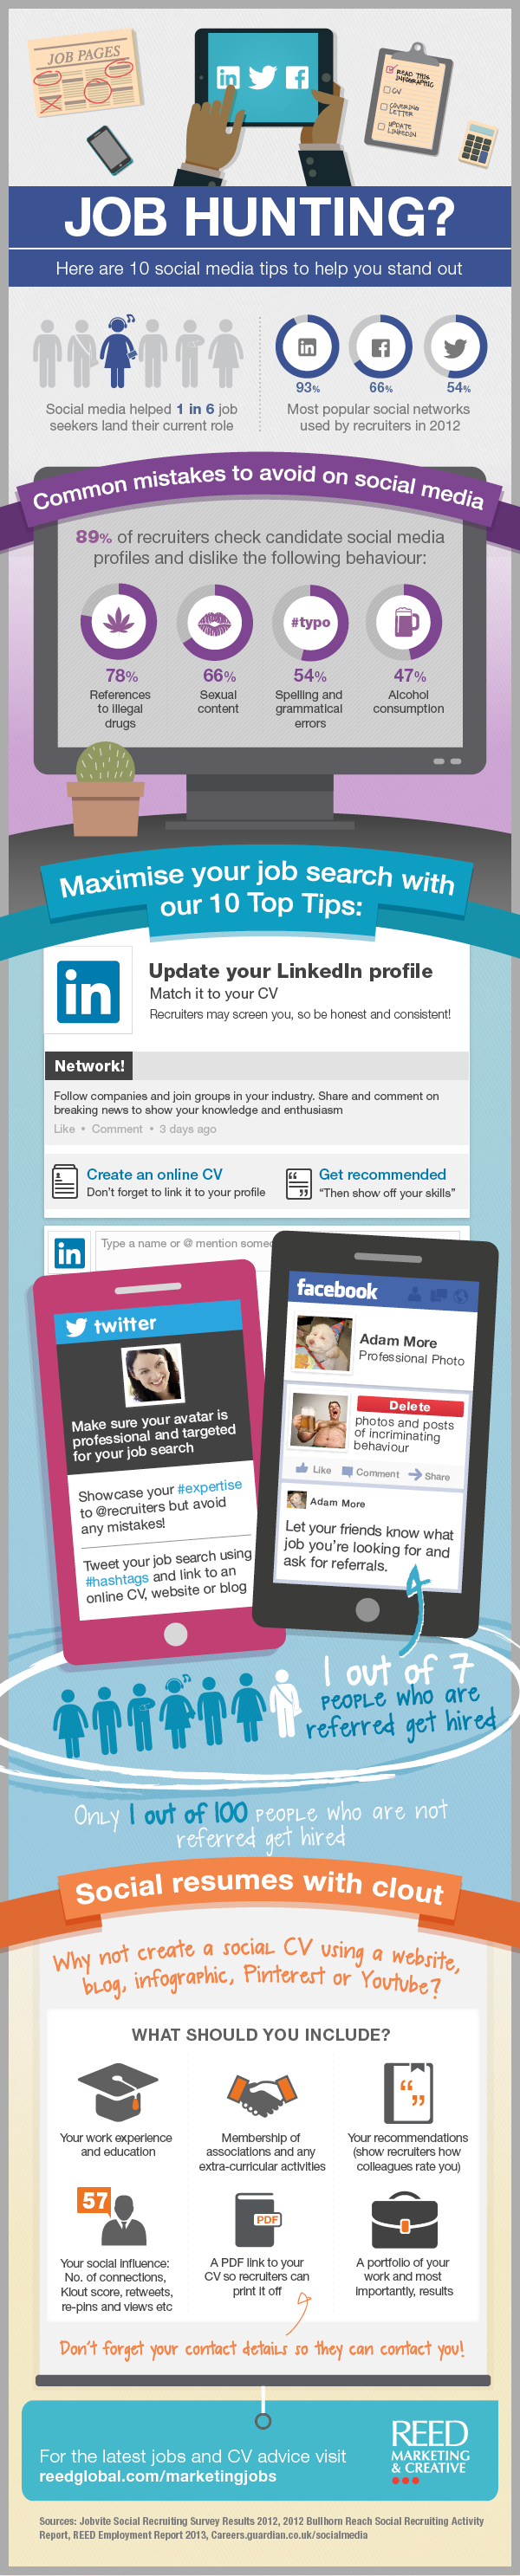 job-hunting-here-are-10-social-media-tips-to-help-you-stand-out_51d44eddc65ec